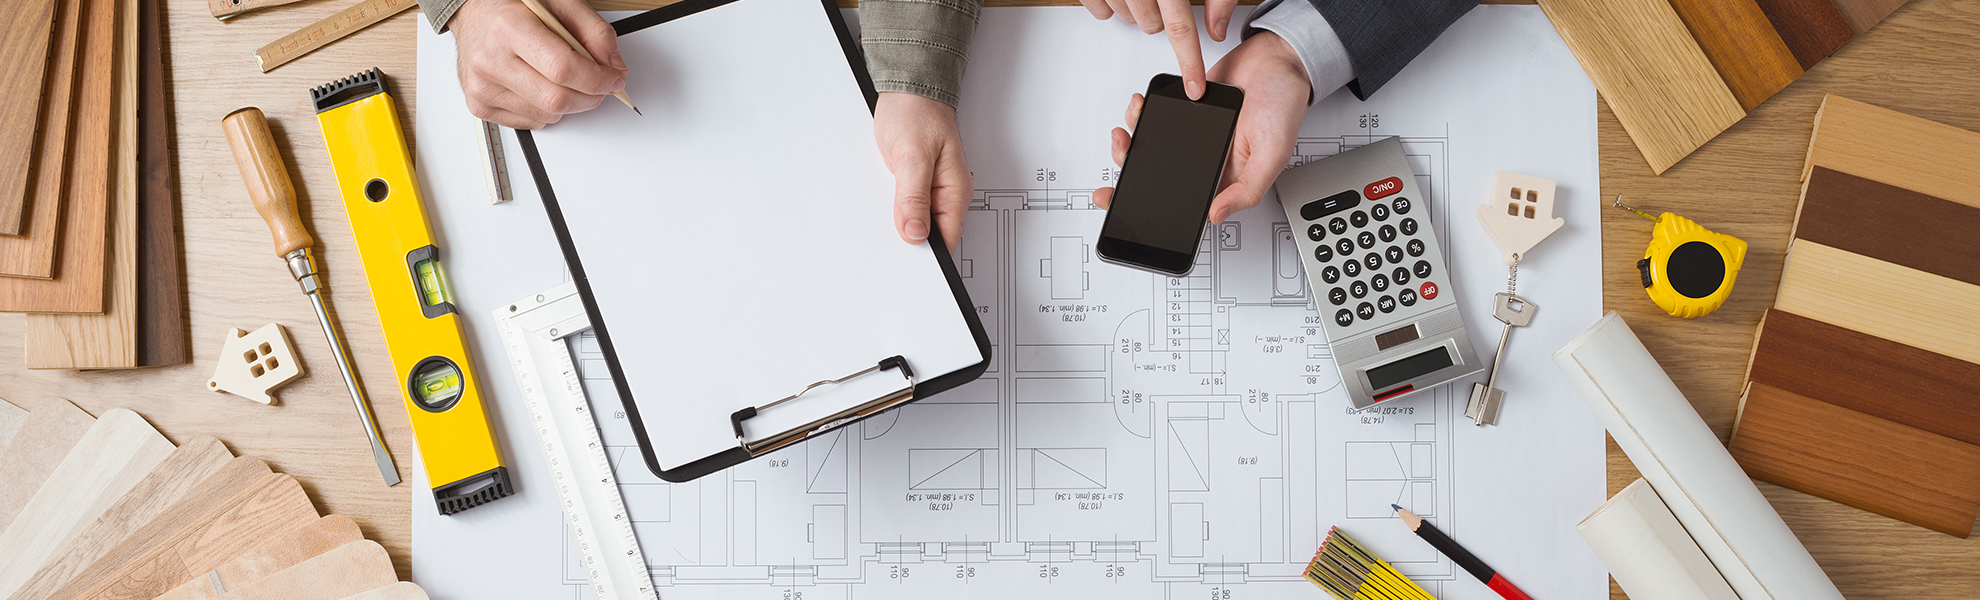 Remodeling-Cost-Planning